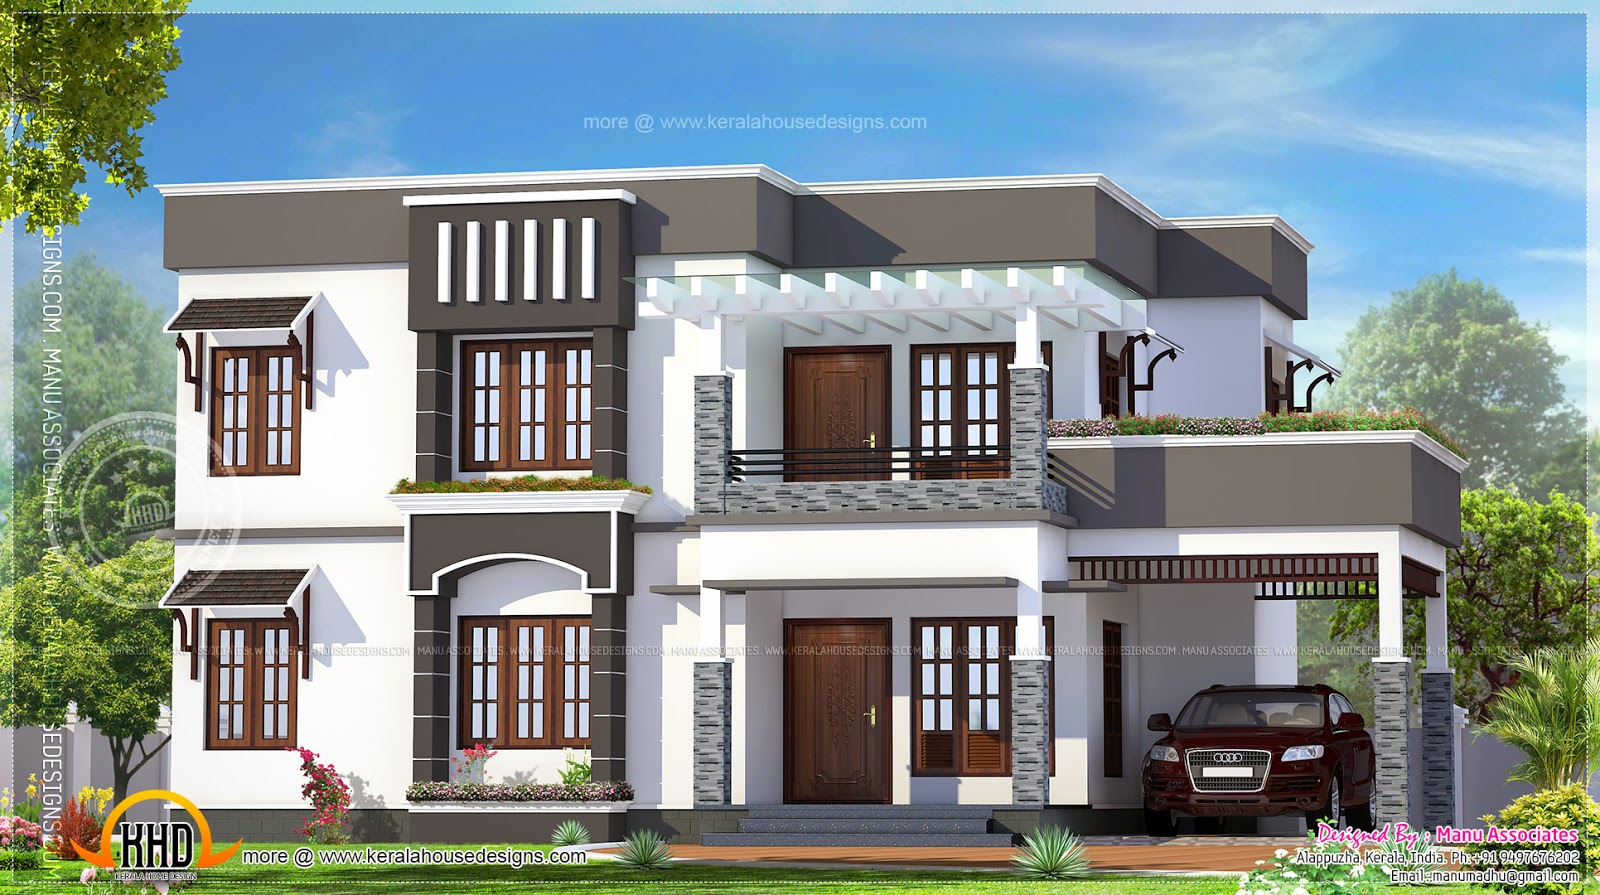 4 bhk flat roof house exterior kerala home design and for Kerala home design flat roof elevation